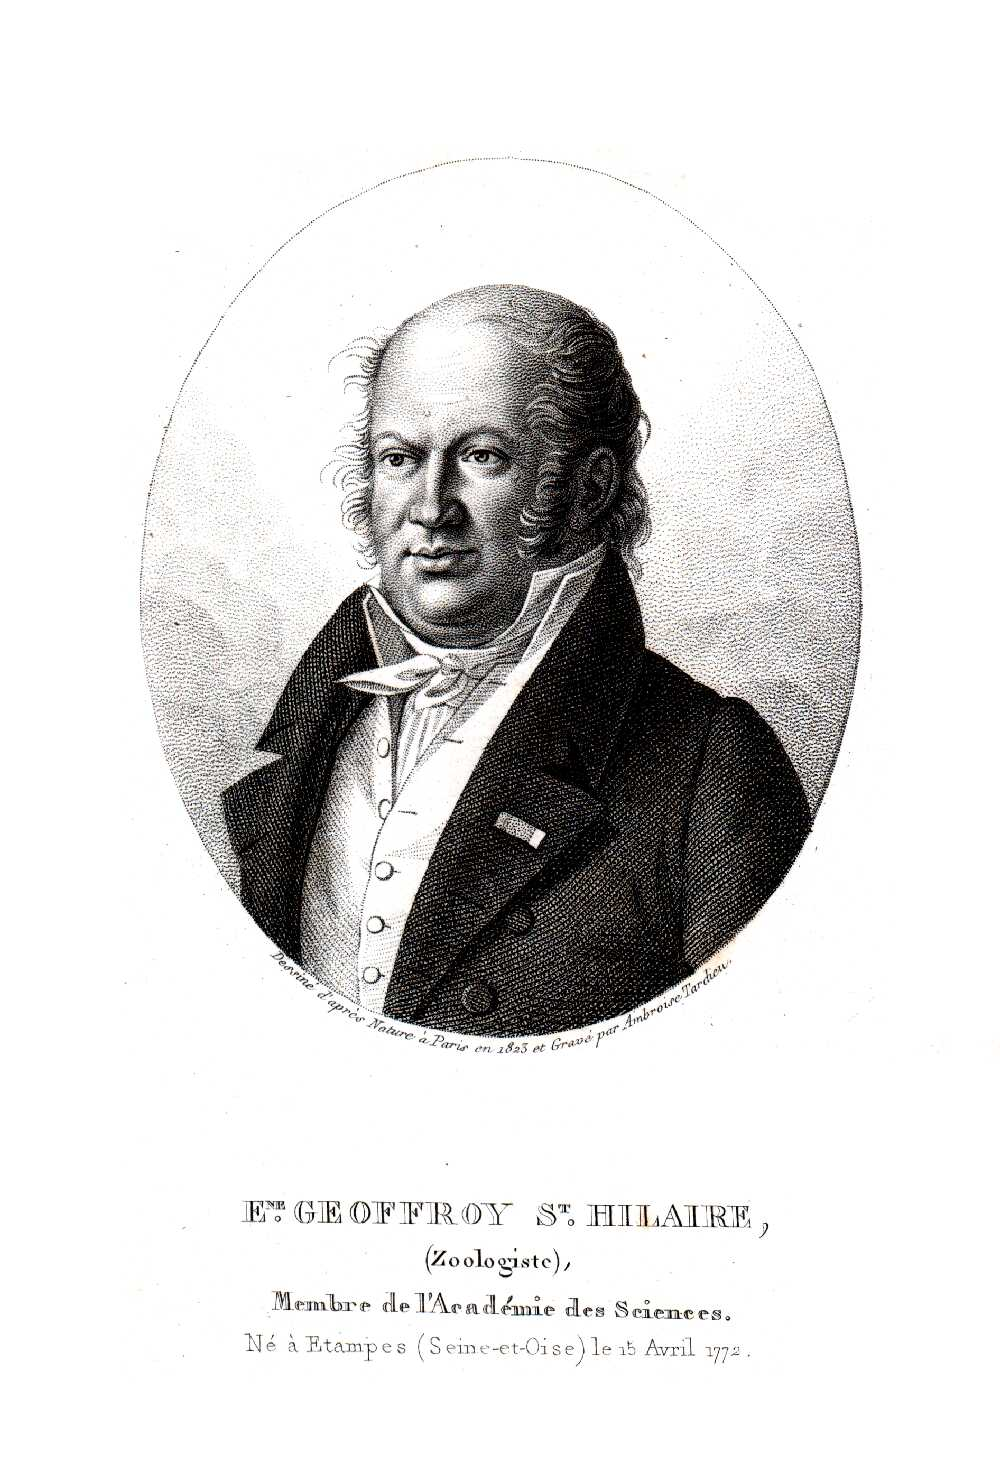 An engraving of Étienne Geoffroy Saint-Hilaire.